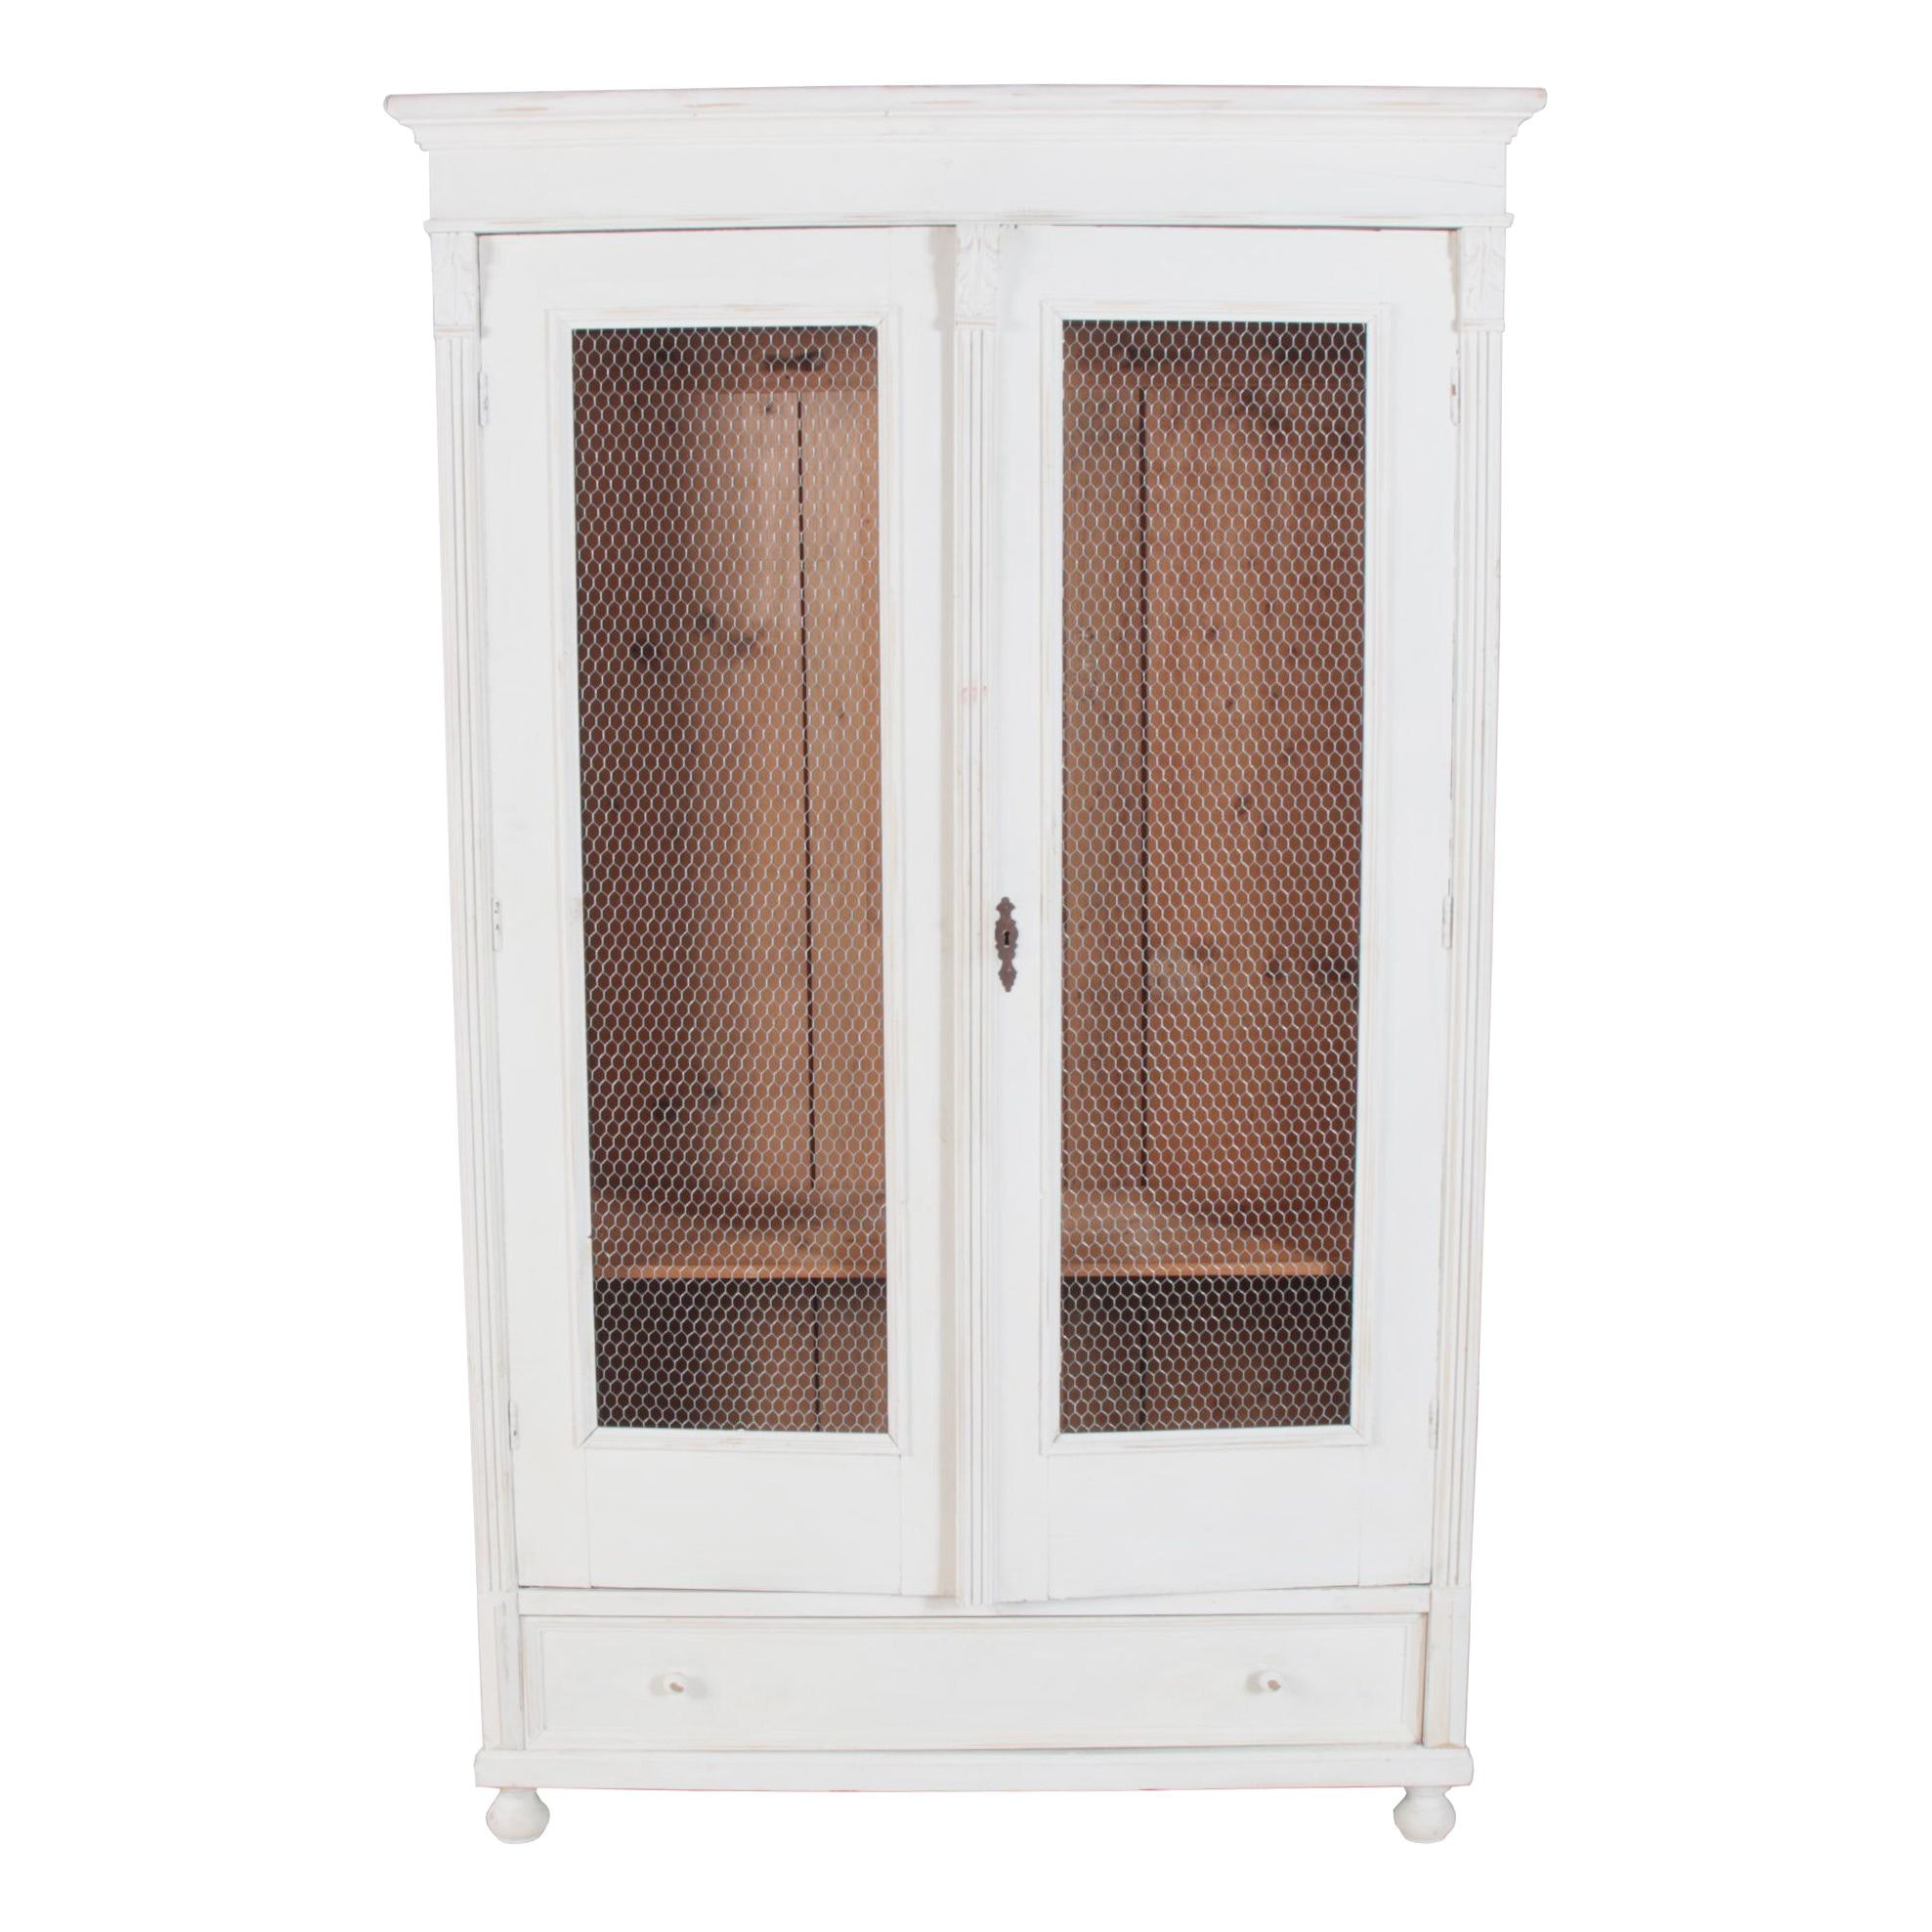 Continental Painted Pine Wardrobe with Chicken Wire Door Panels